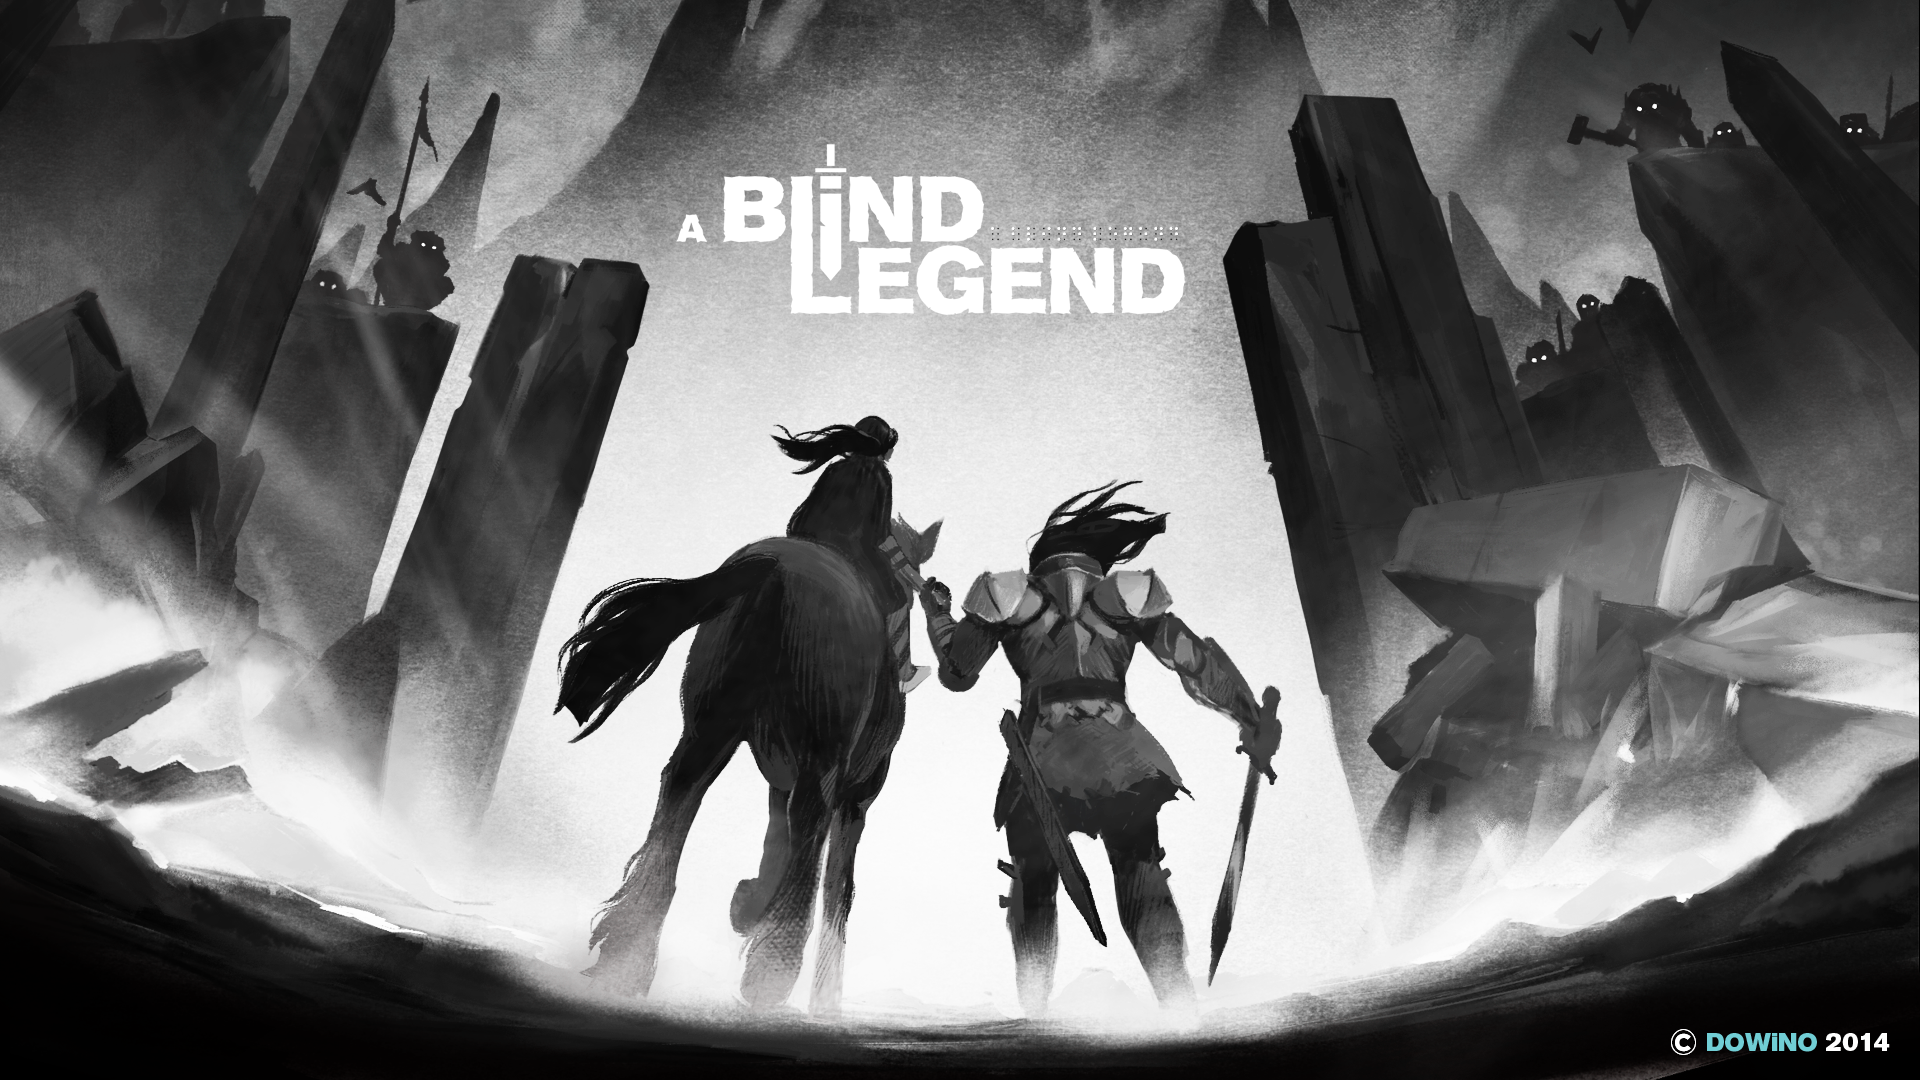 A game about a blind knight, played entirely with sound